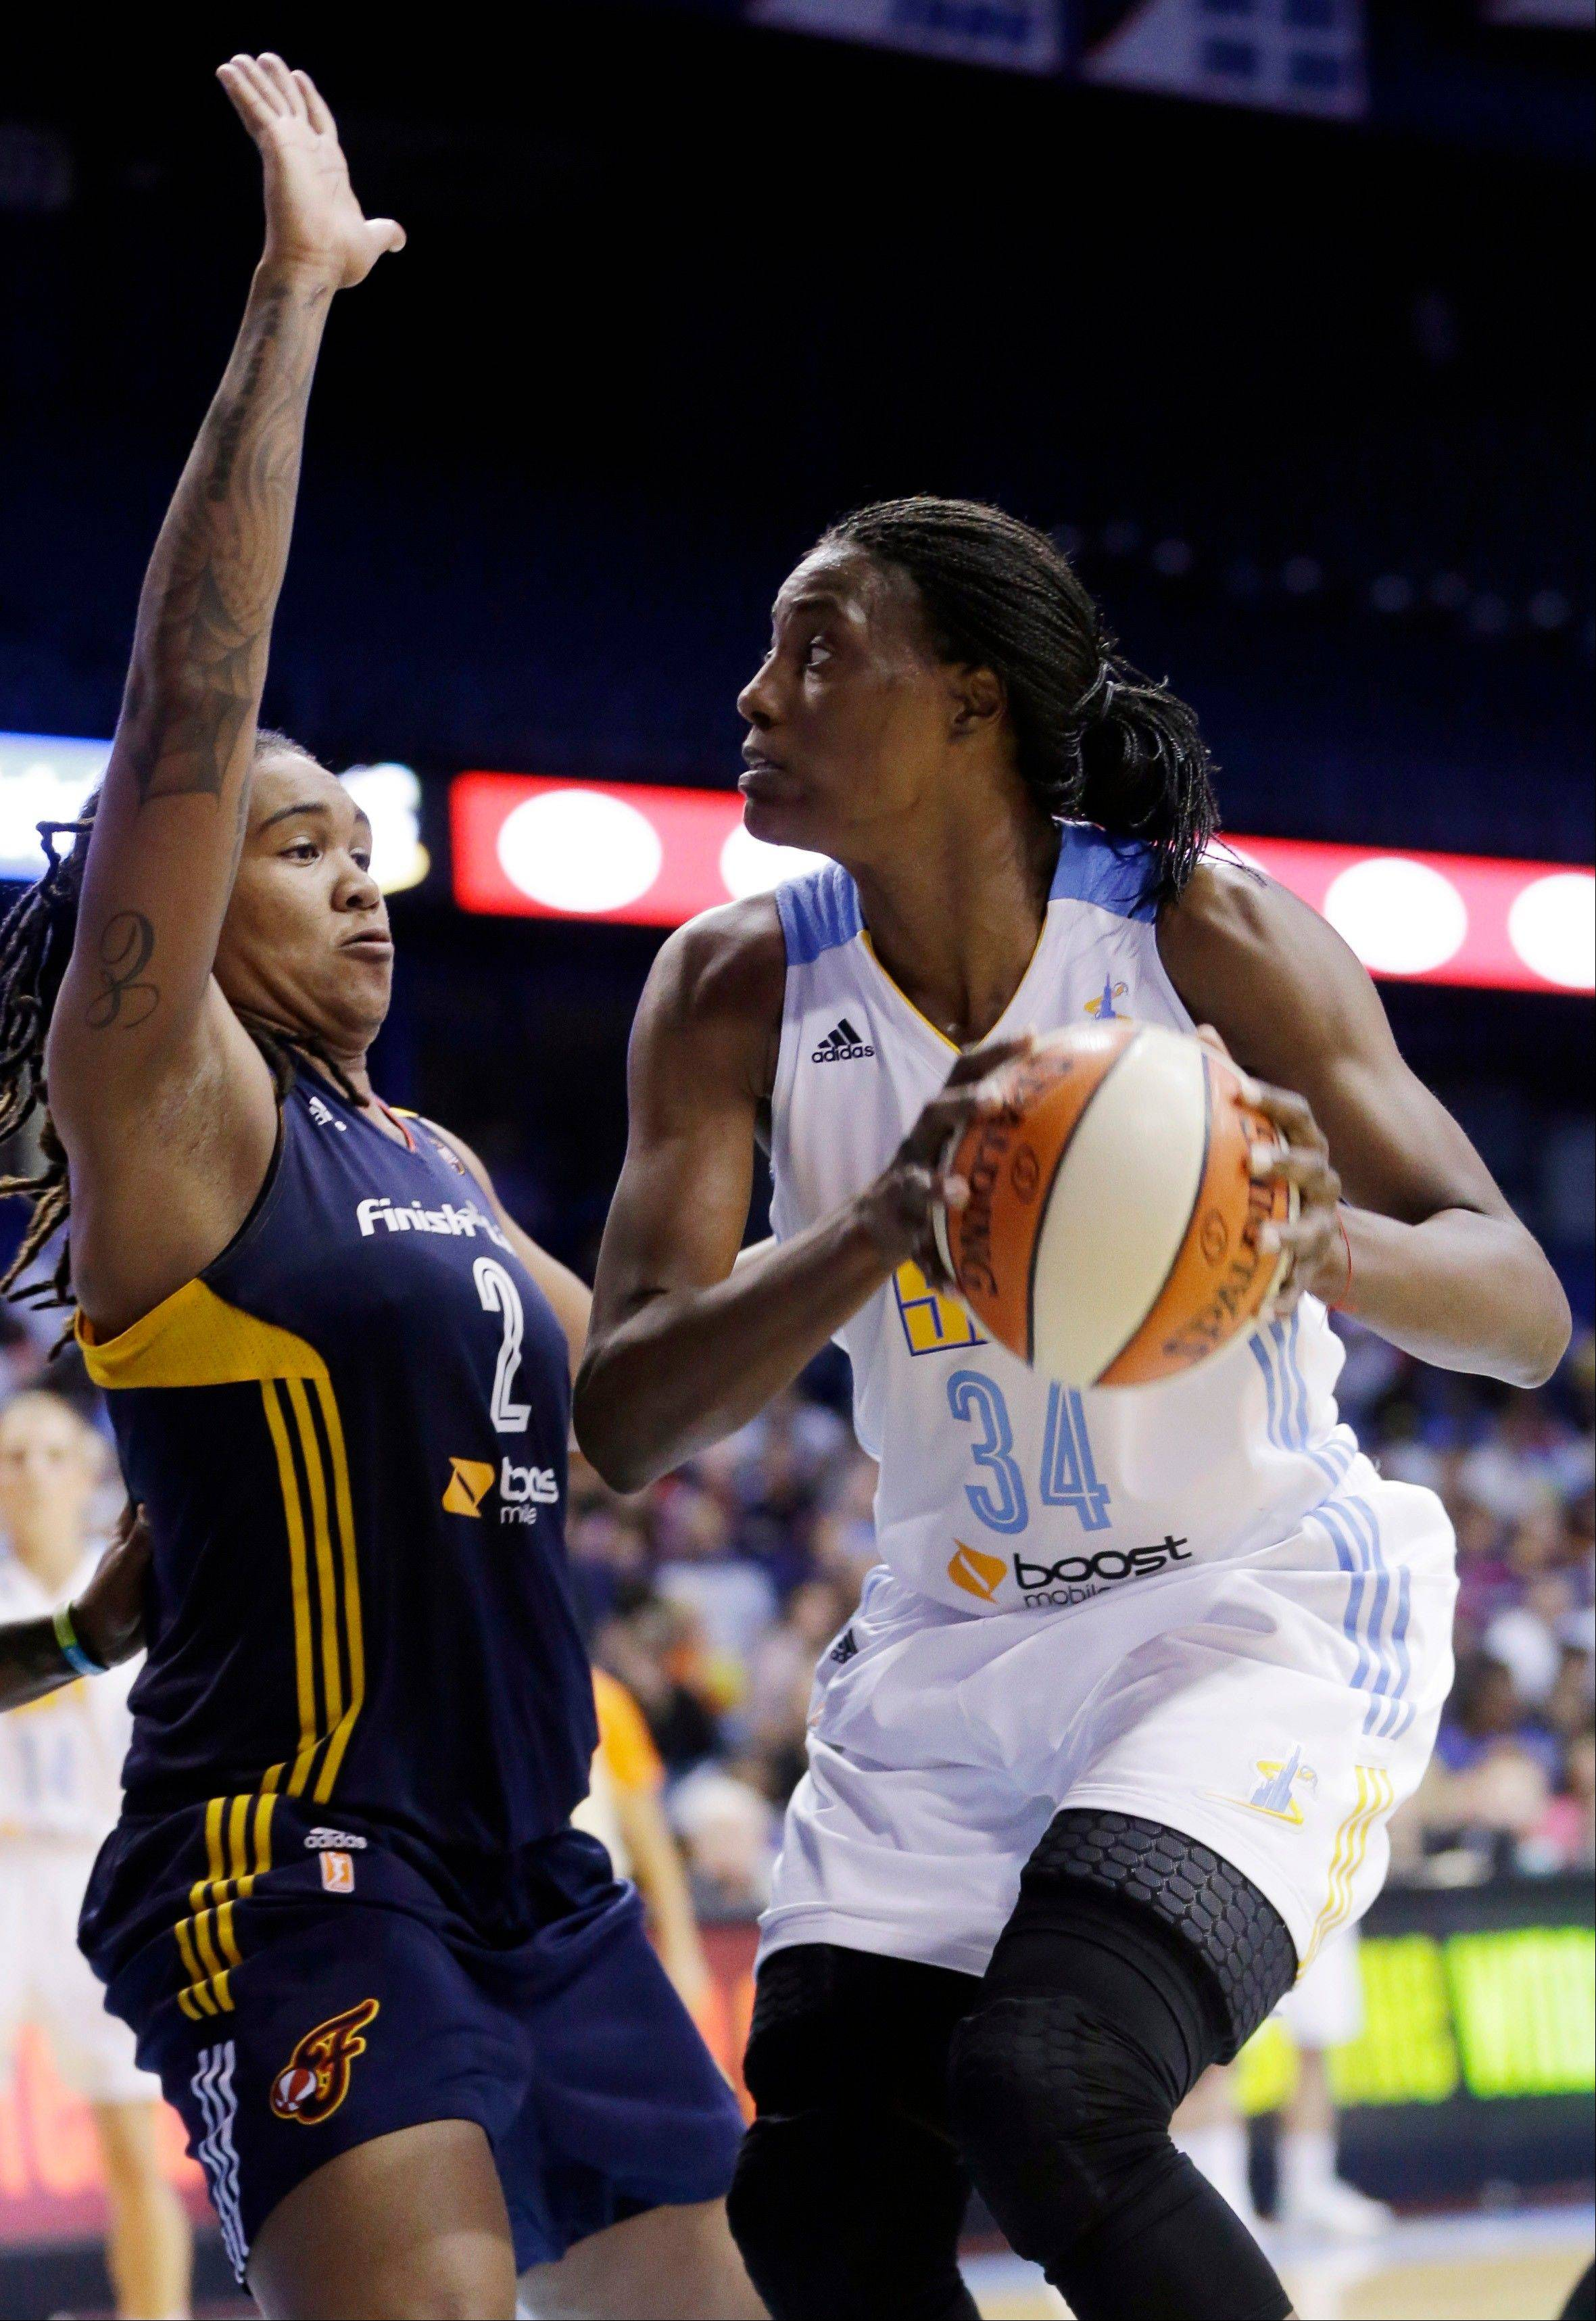 Indiana Fever center Erlana Larkins, left, guards Chicago Sky center Sylvia Fowles during the second half in Game 1 of the WNBA basketball Eastern Conference semifinal series on Friday, Sept. 20, 2013, in Rosemont, Ill. The Fever won 85-72.